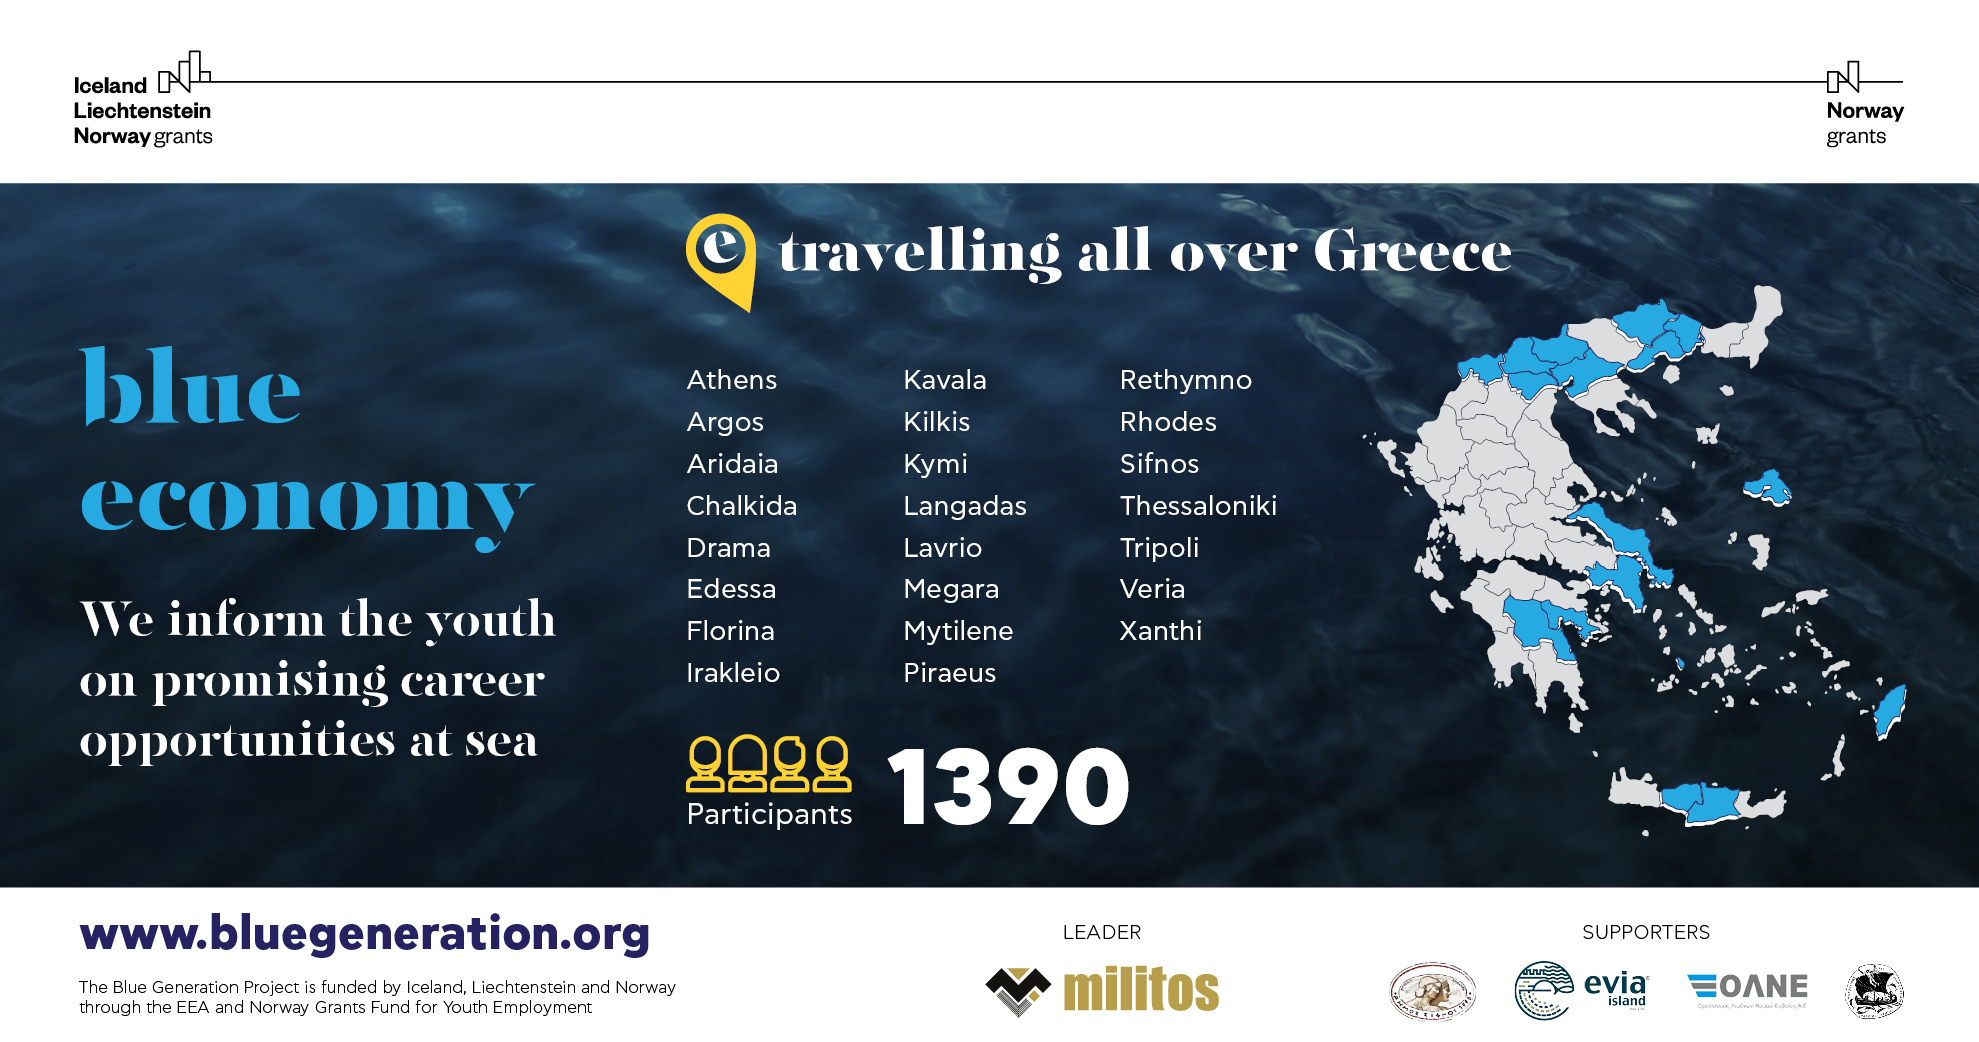 e-travelling all over Greece